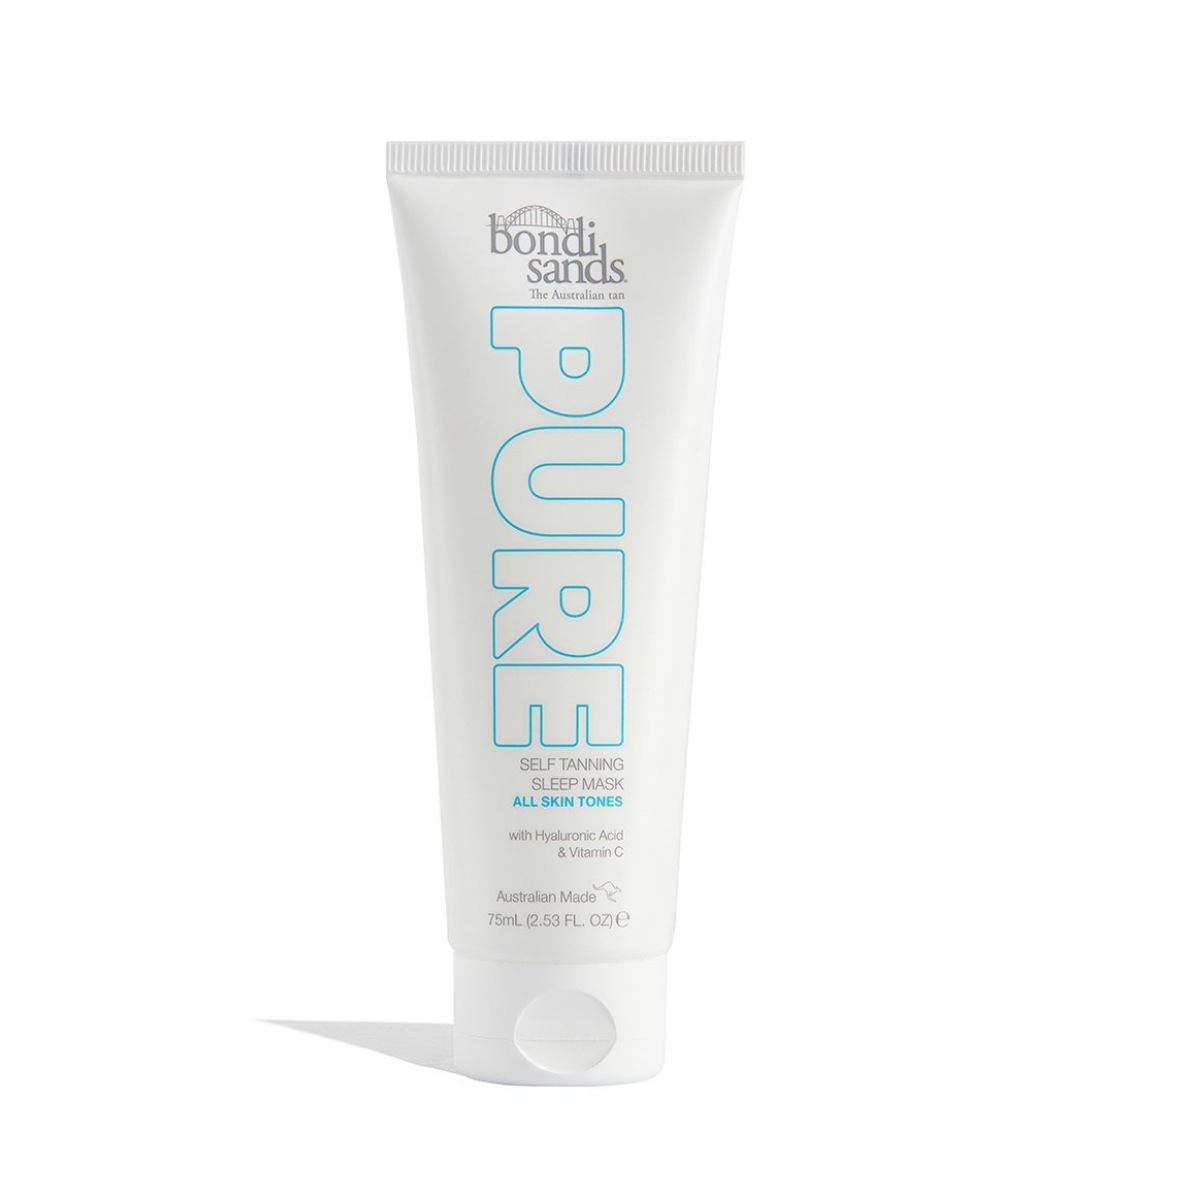 Bondi Sands Pure Tanning Sleep Mask